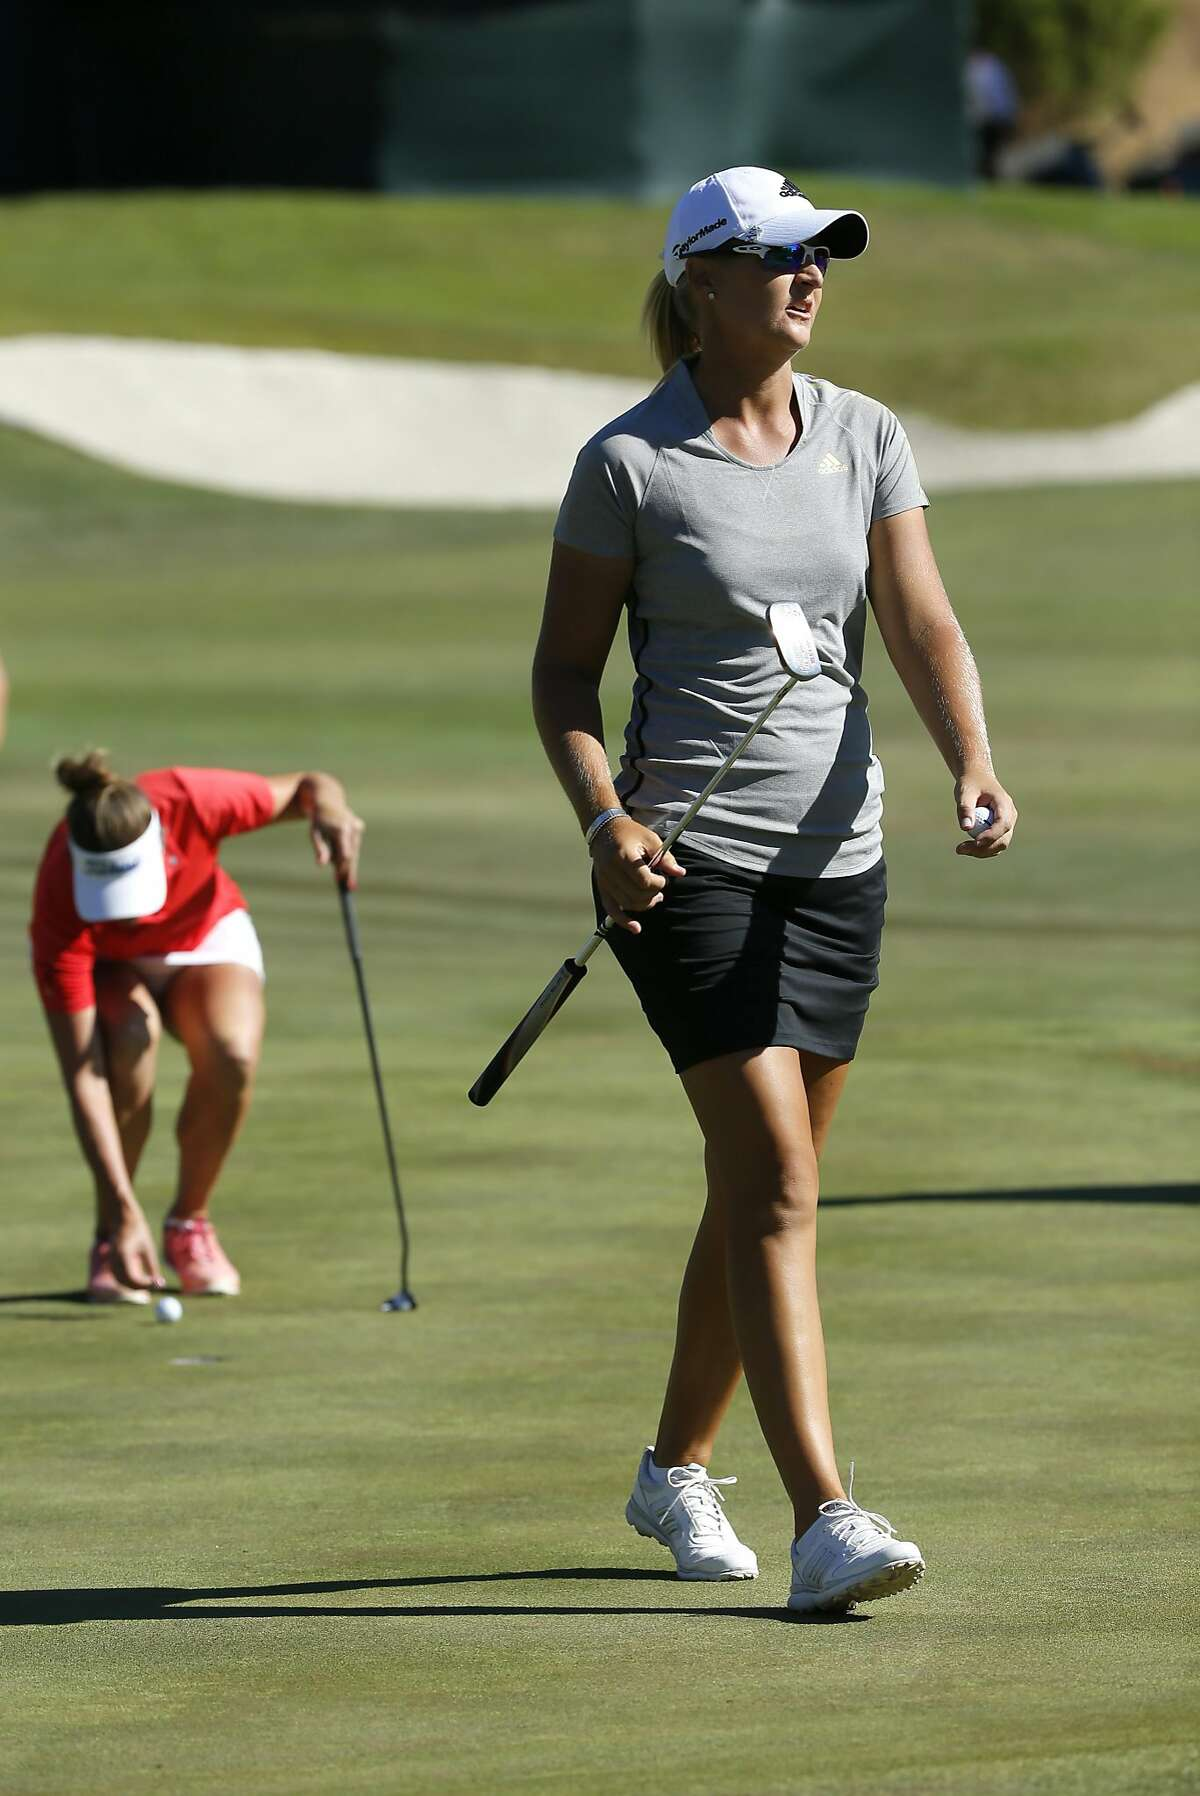 Anna Nordqvist walks off the final hole in her playoff with Brittany Lang, (back) who would win the 2016 U.S. Women's Open Championship at CordeValle in San Martin, California, on Sun. July 10, 2016.